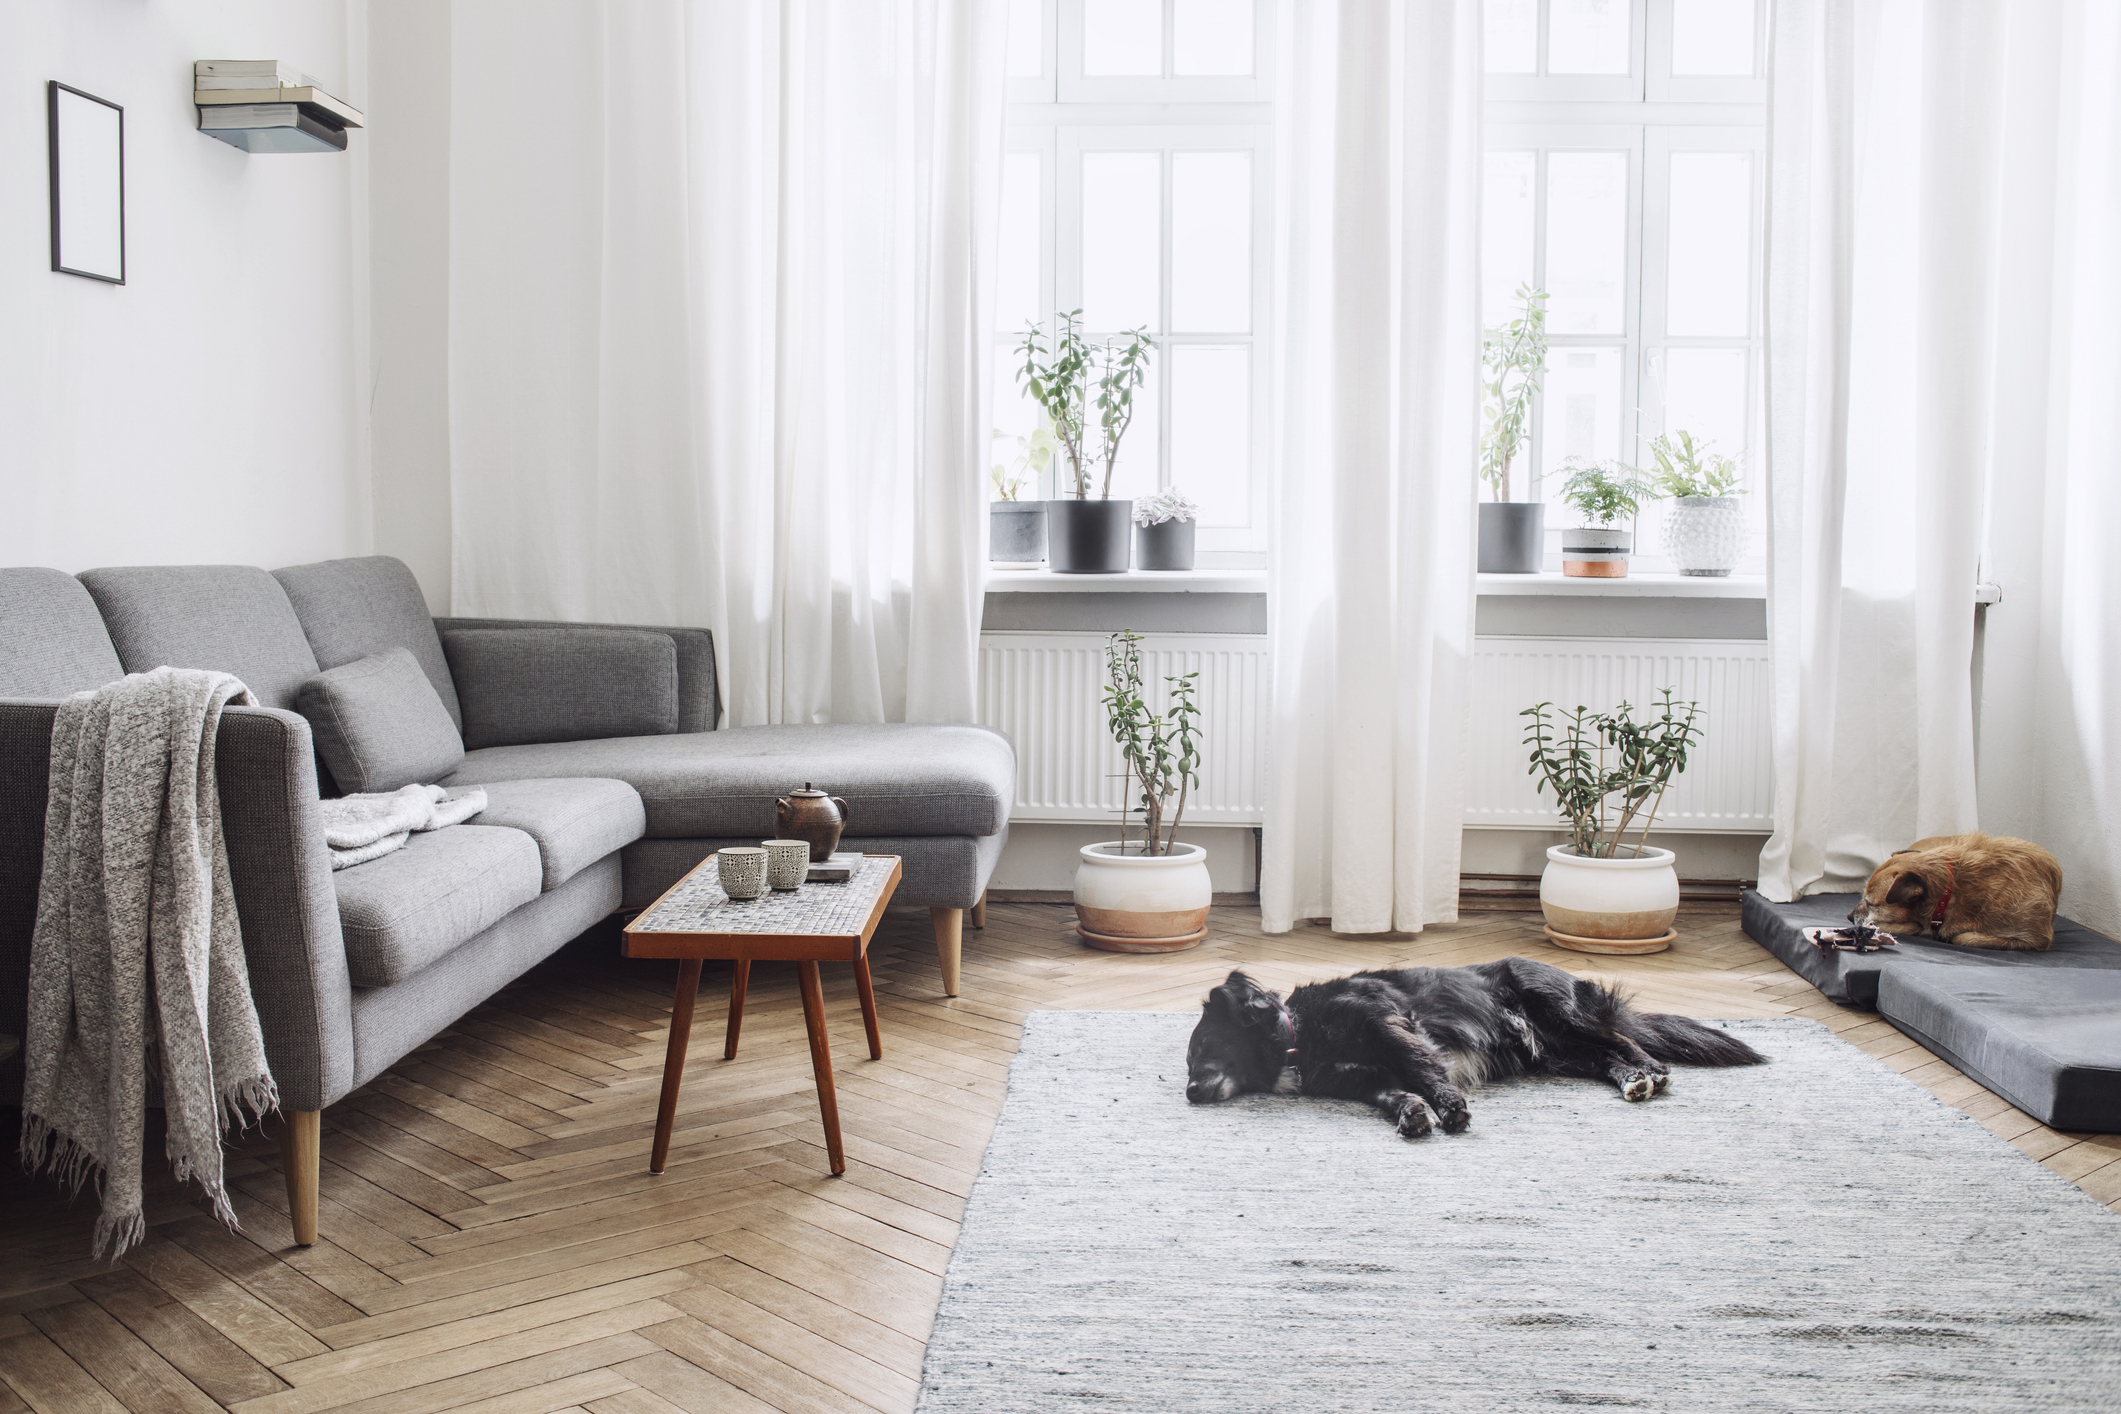 An apartment living room with dogs napping.